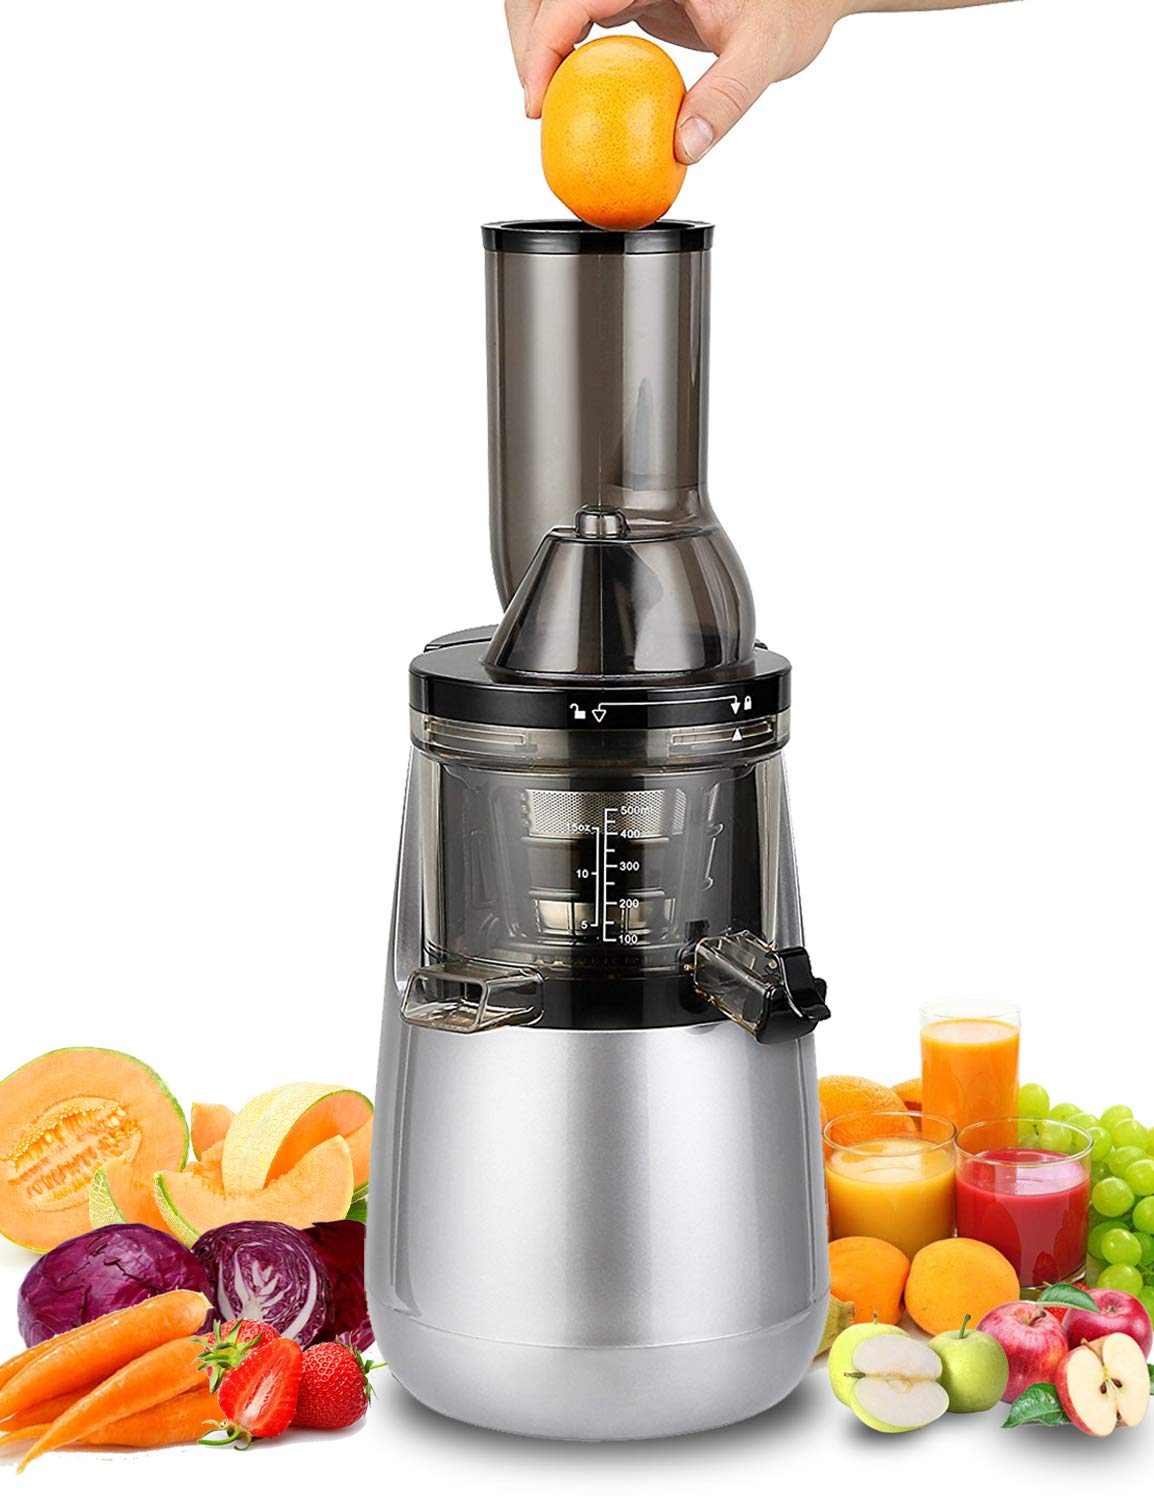 """Slow Masticating Juicer by Tiluxury, Low Speed With Wide Chute Anti-Oxidation,Whole Fruit and Vegetable Vertical Cold Press Juicers(250W AC Motor,40 RPMs,3"""" Big Mouth),BPA Free (Silver Gray)"""